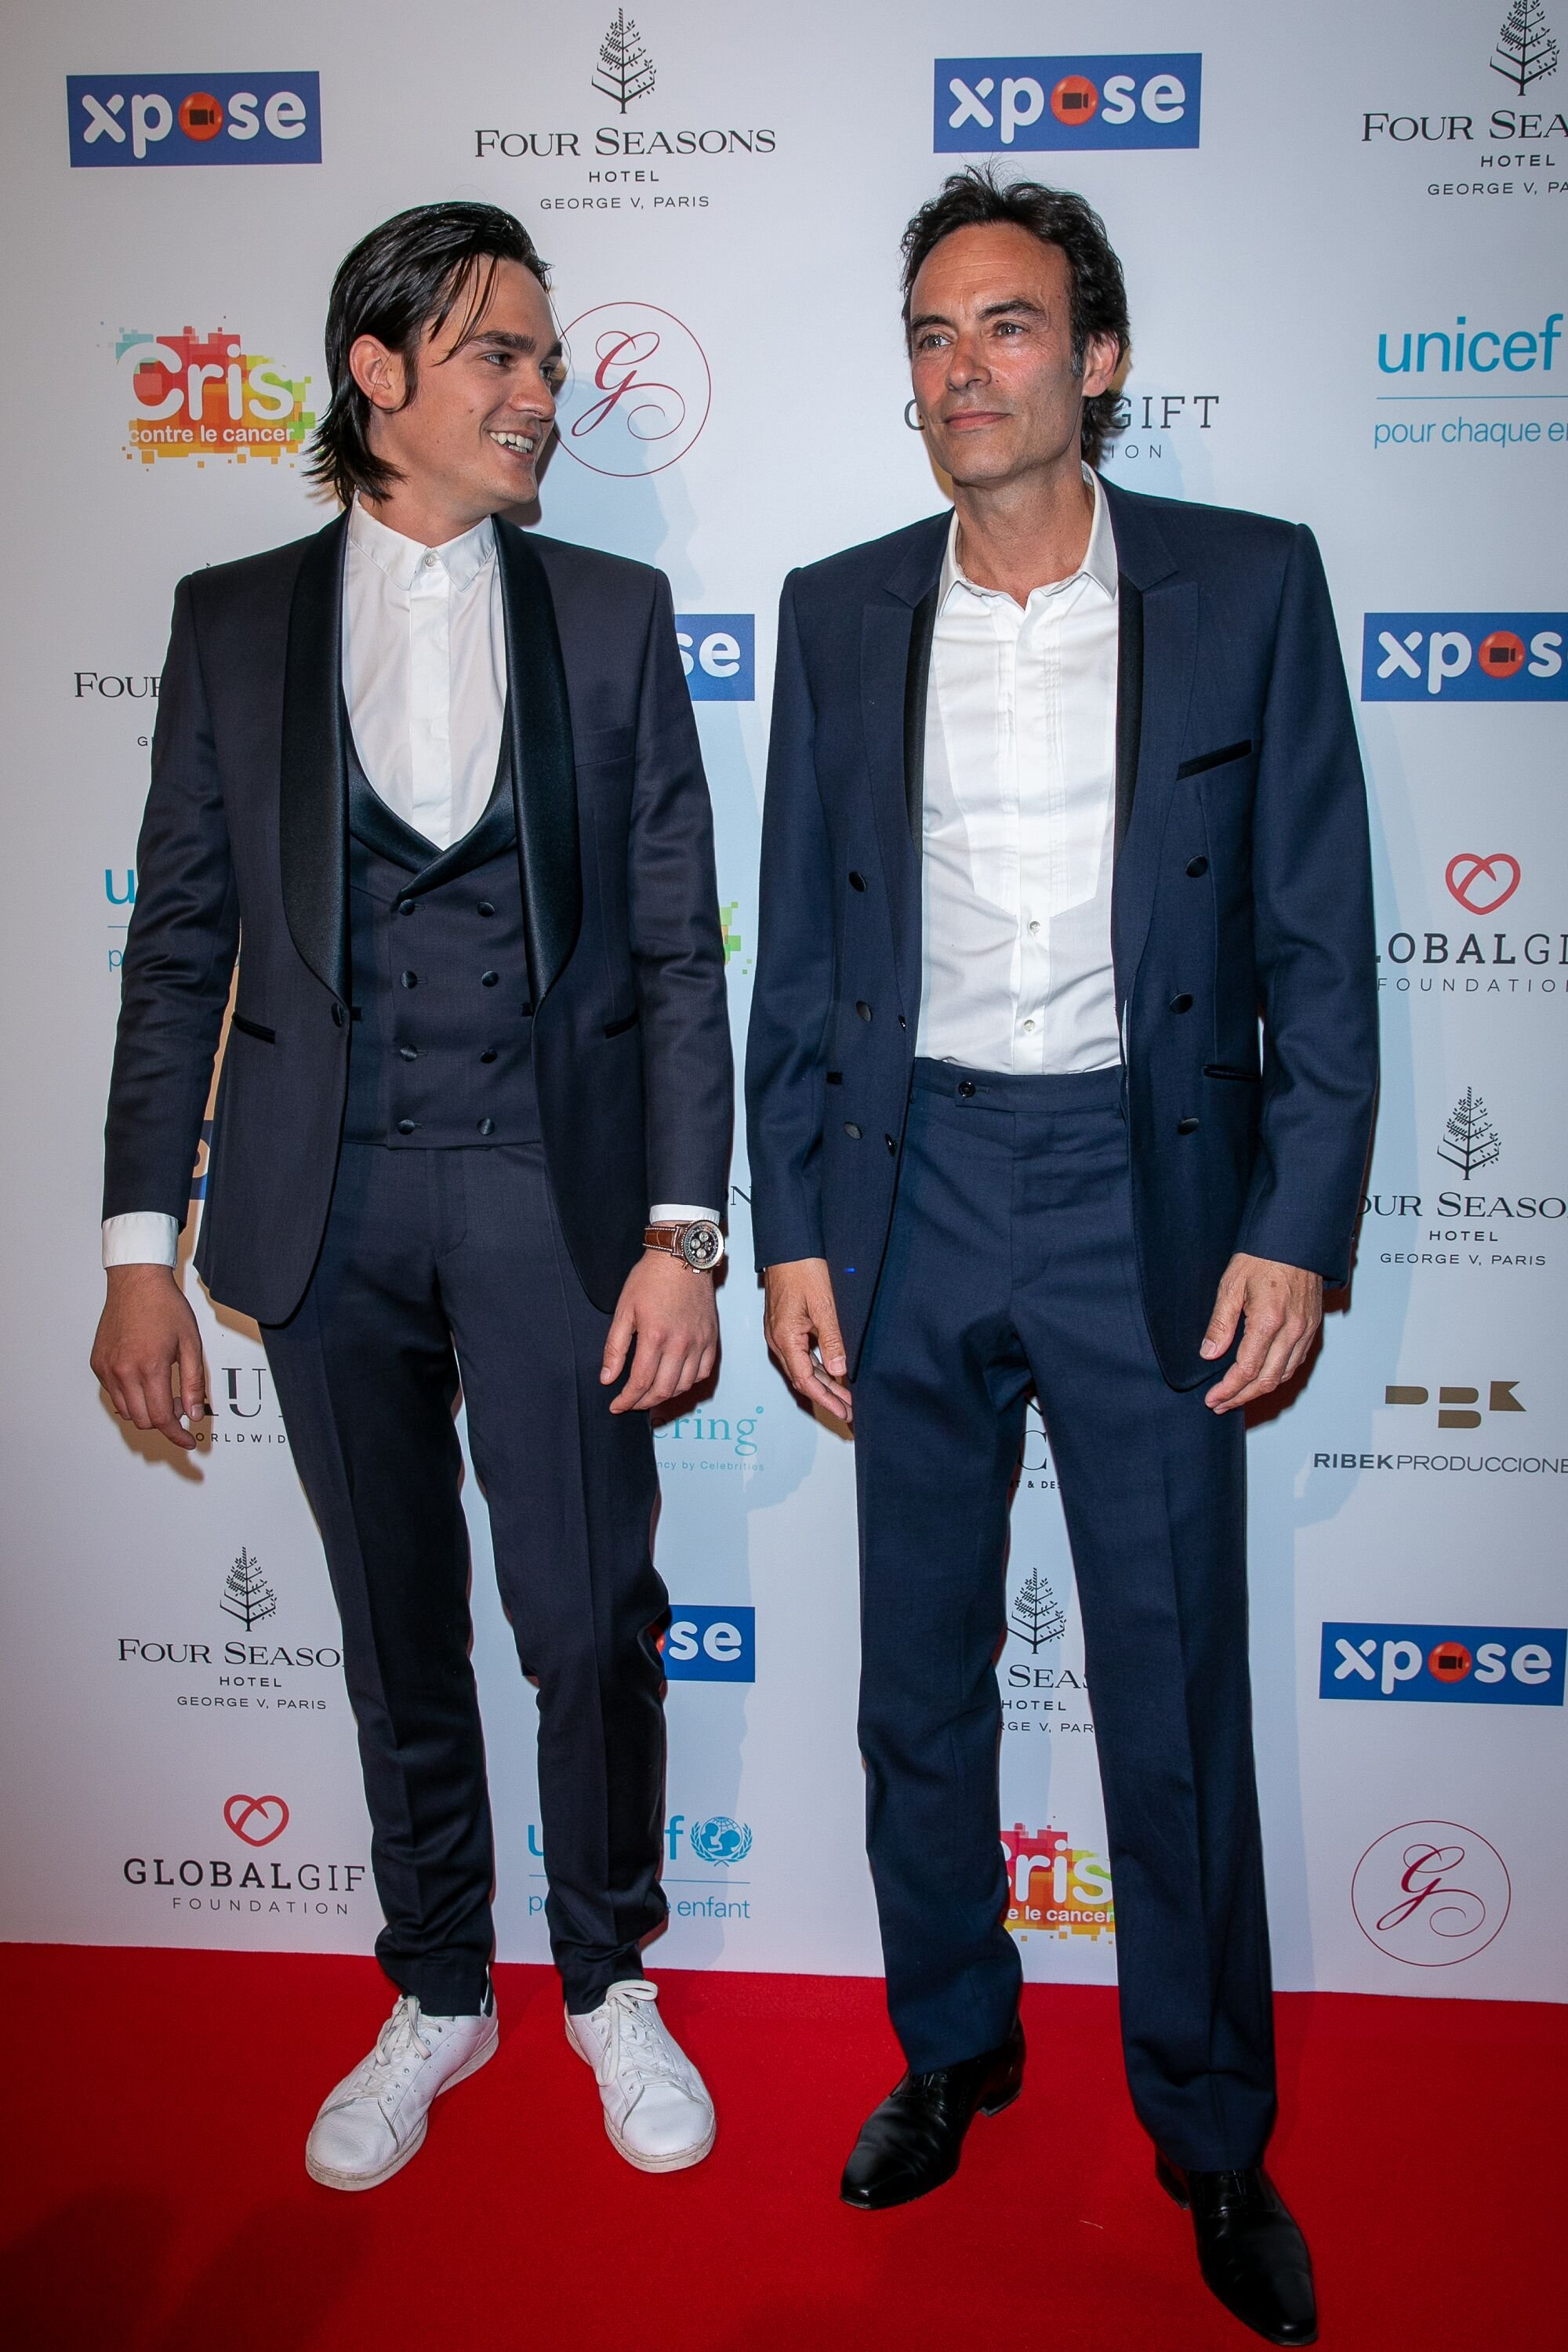 Anthony Delon et Alain Fabien Delon |Source: Getty Images